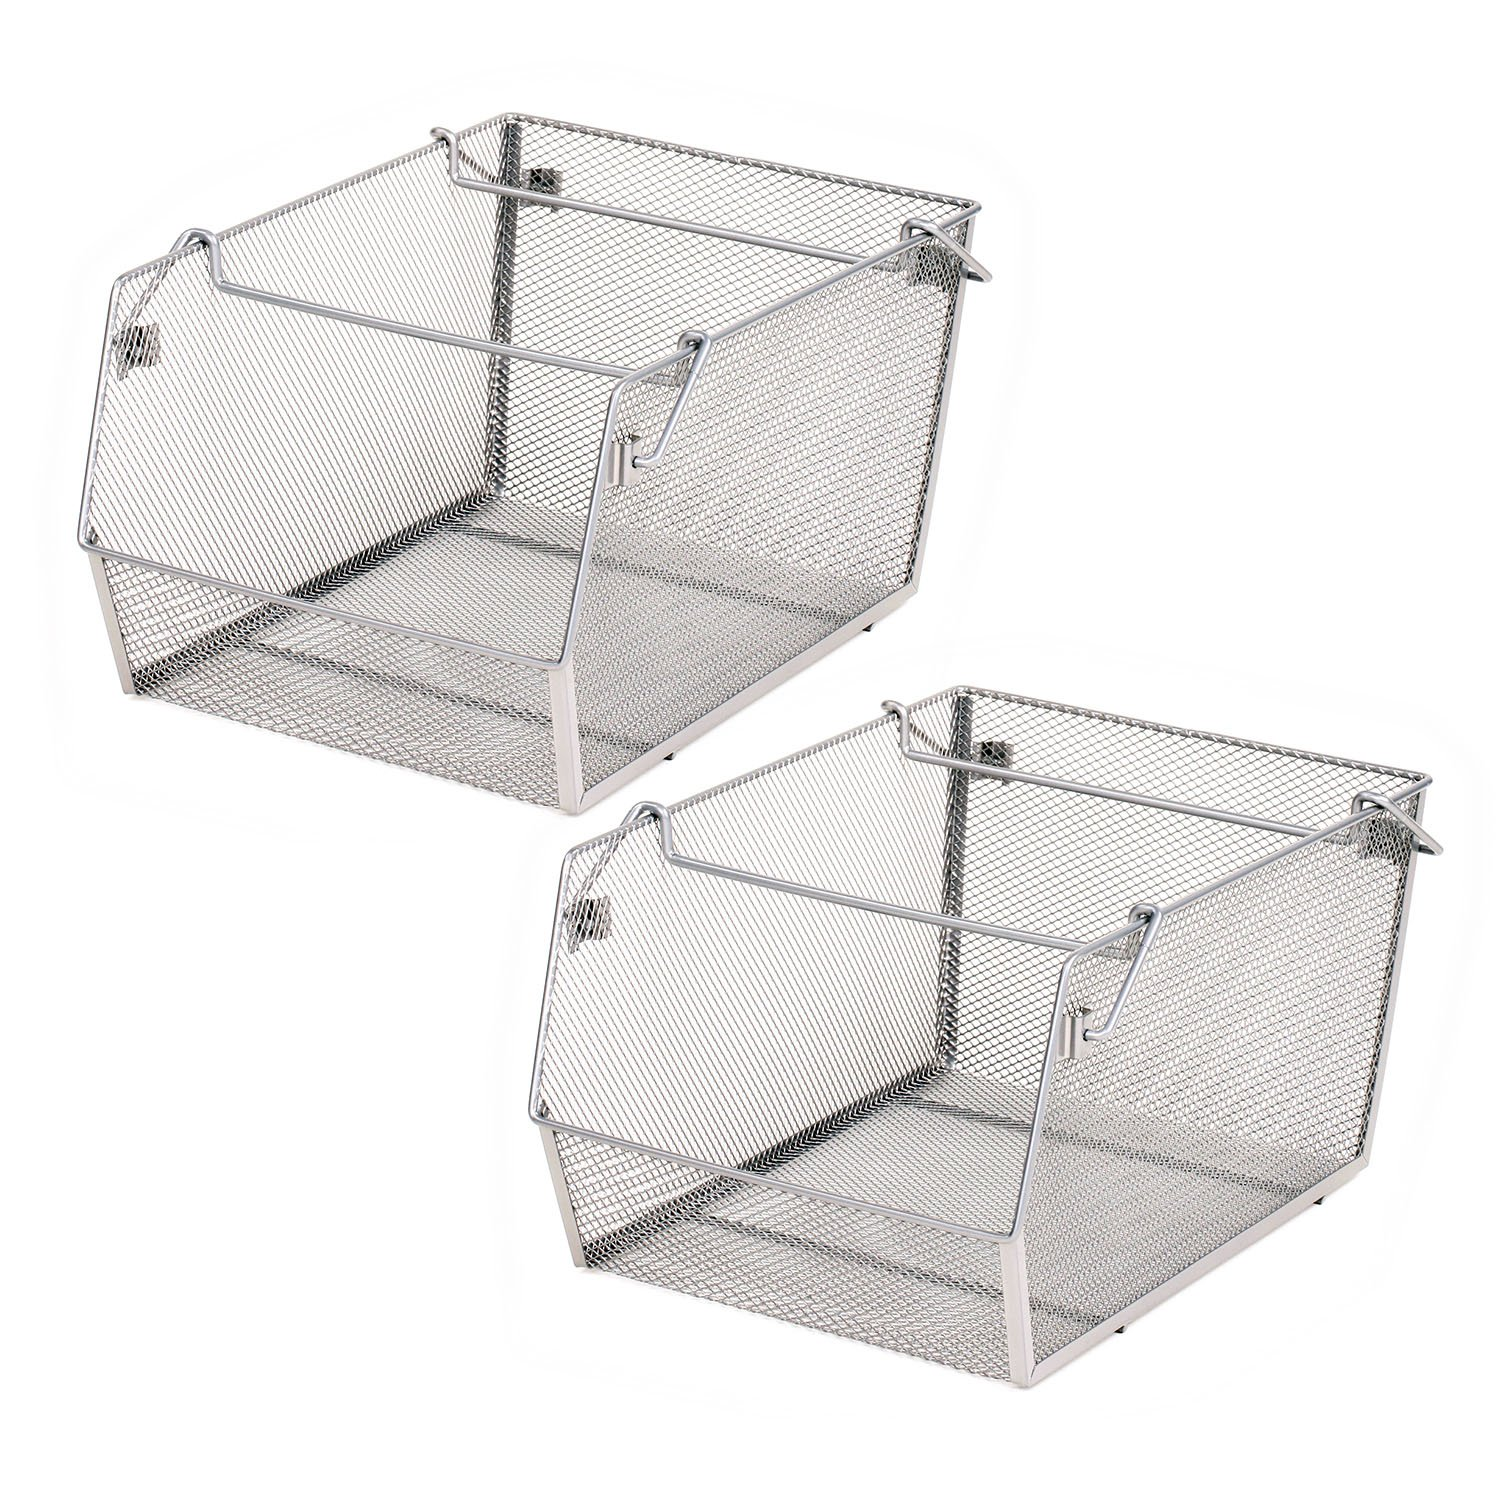 Amazon.com: Seville Classics Mesh Stacking Bin (2 Pack), Large: Home U0026  Kitchen